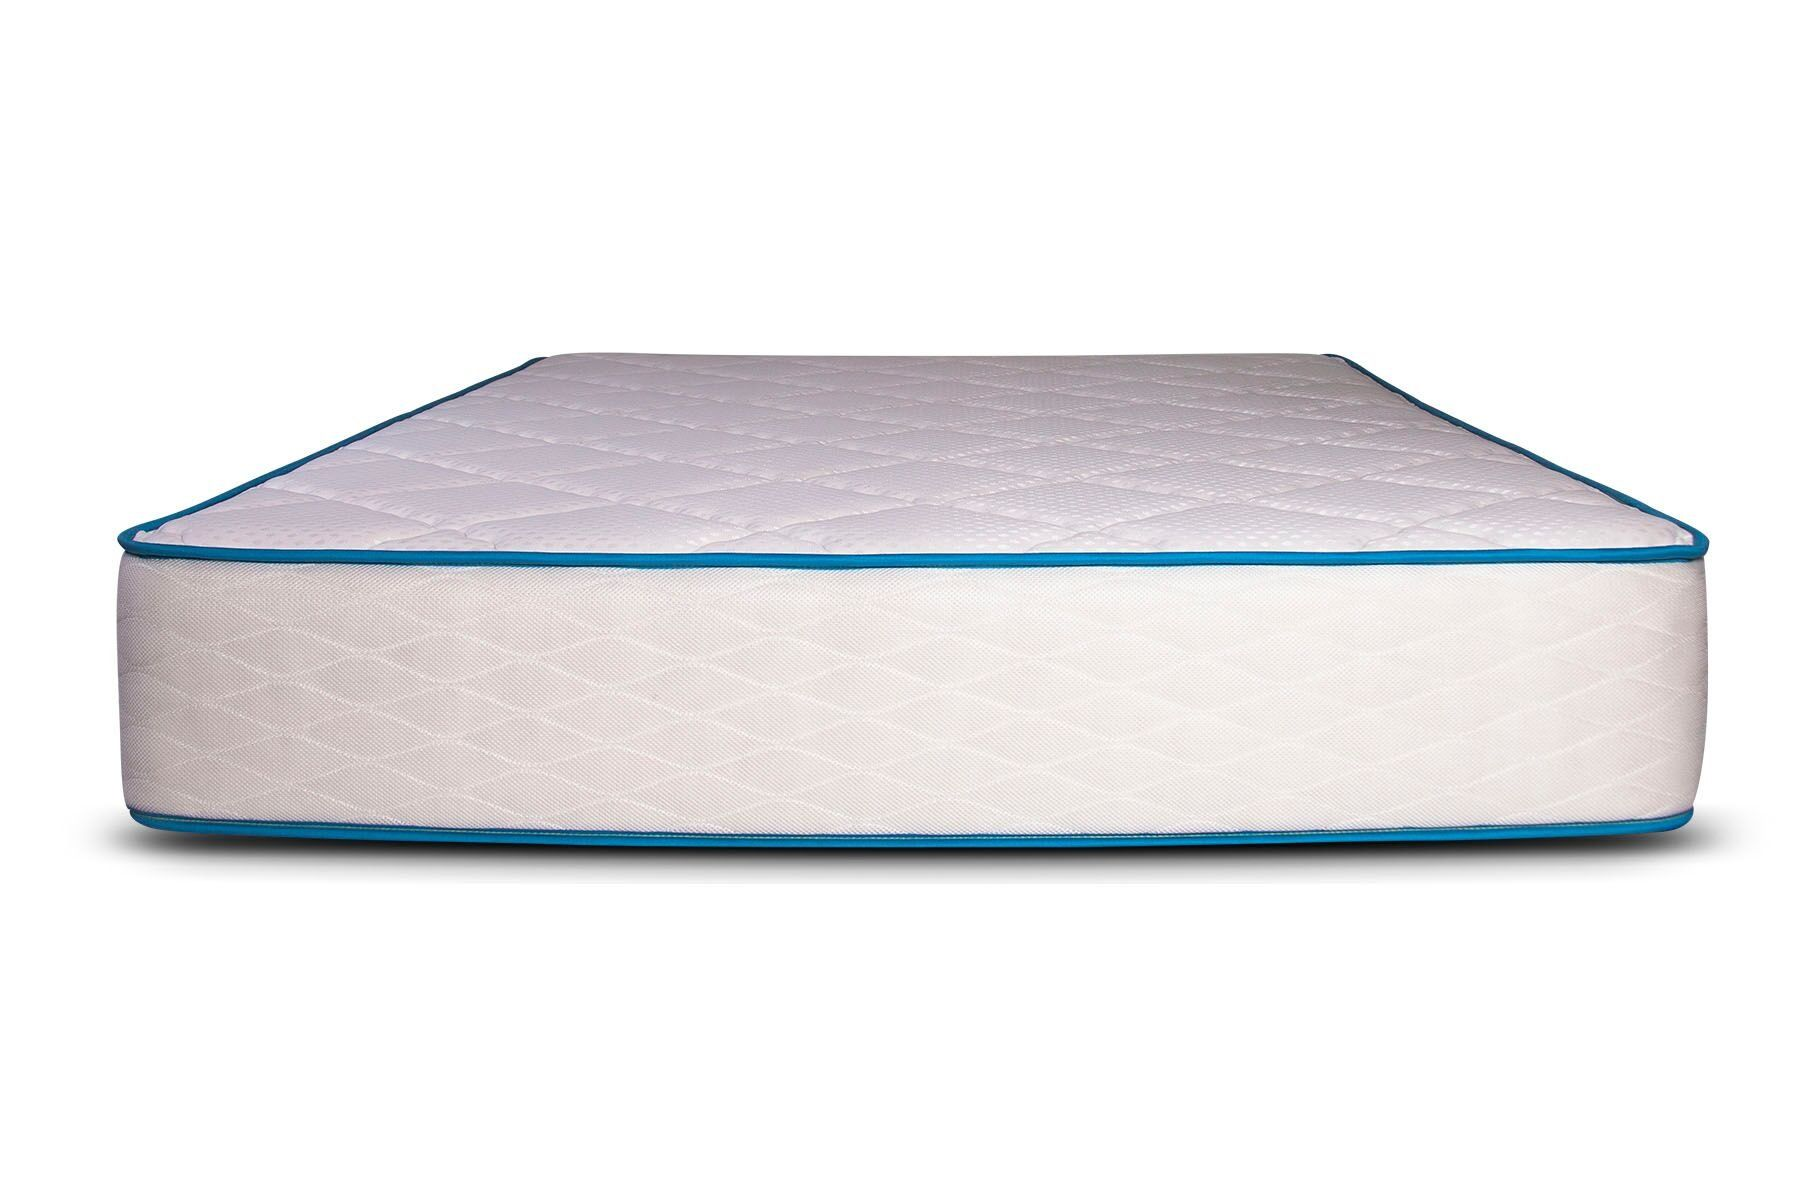 Dreamfoam Bedding Arctic Dreams 10inch Cooling Gel Mattress Queen